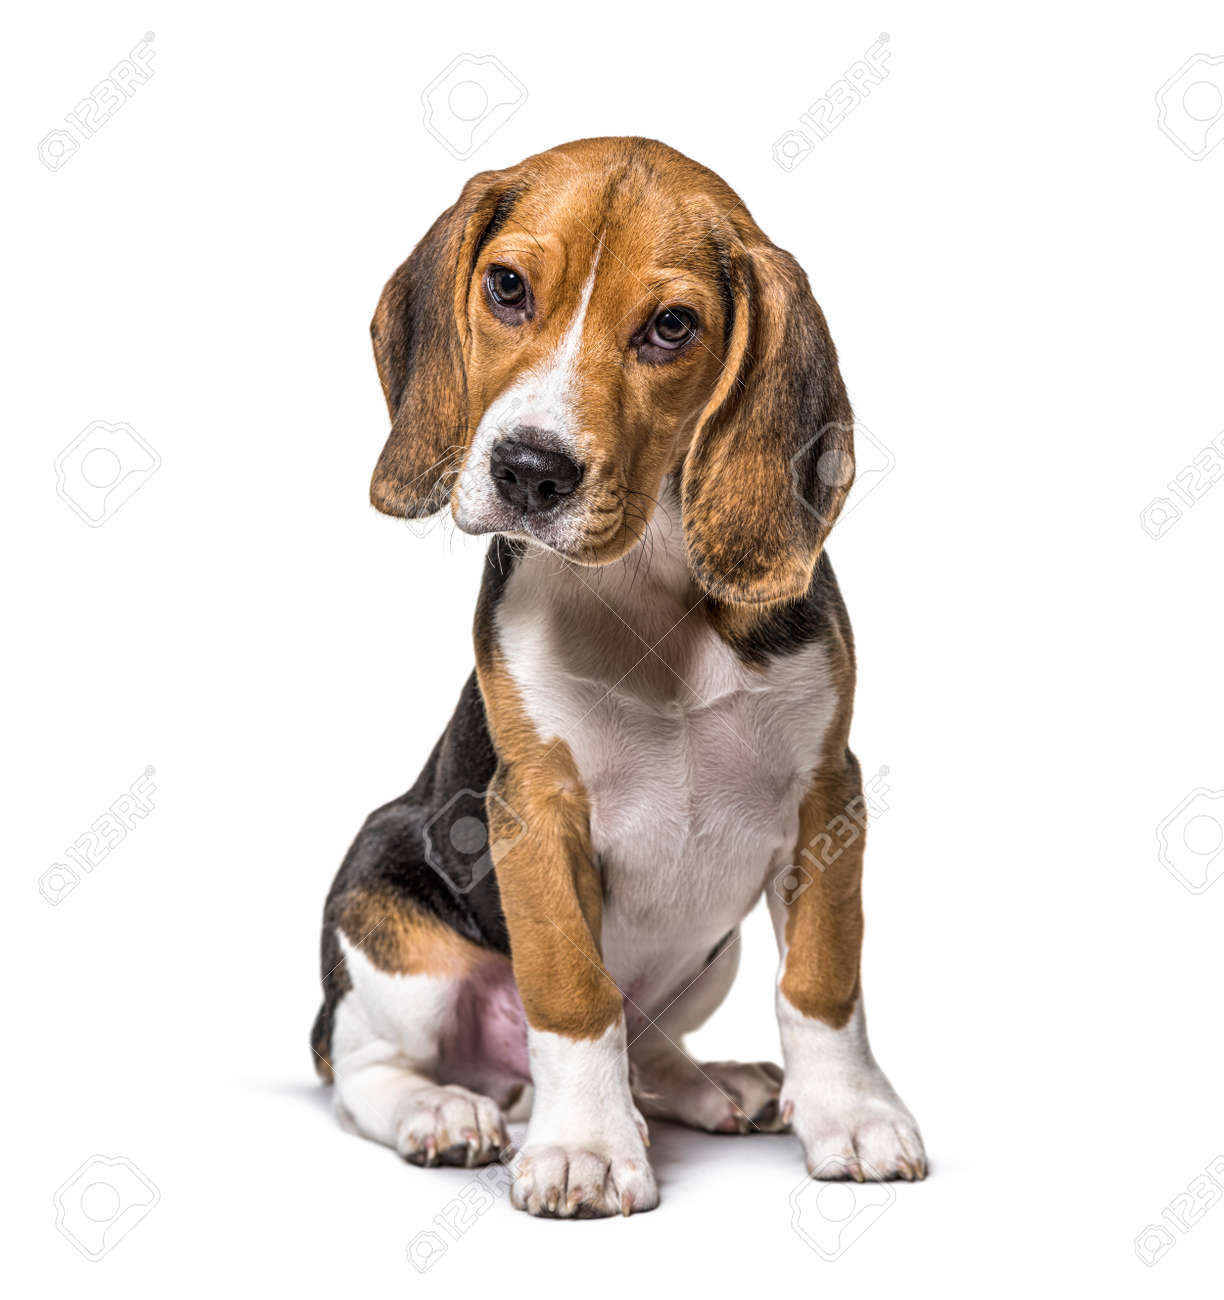 Young puppy three months old Beagles dog sitting, isolated - 171048973